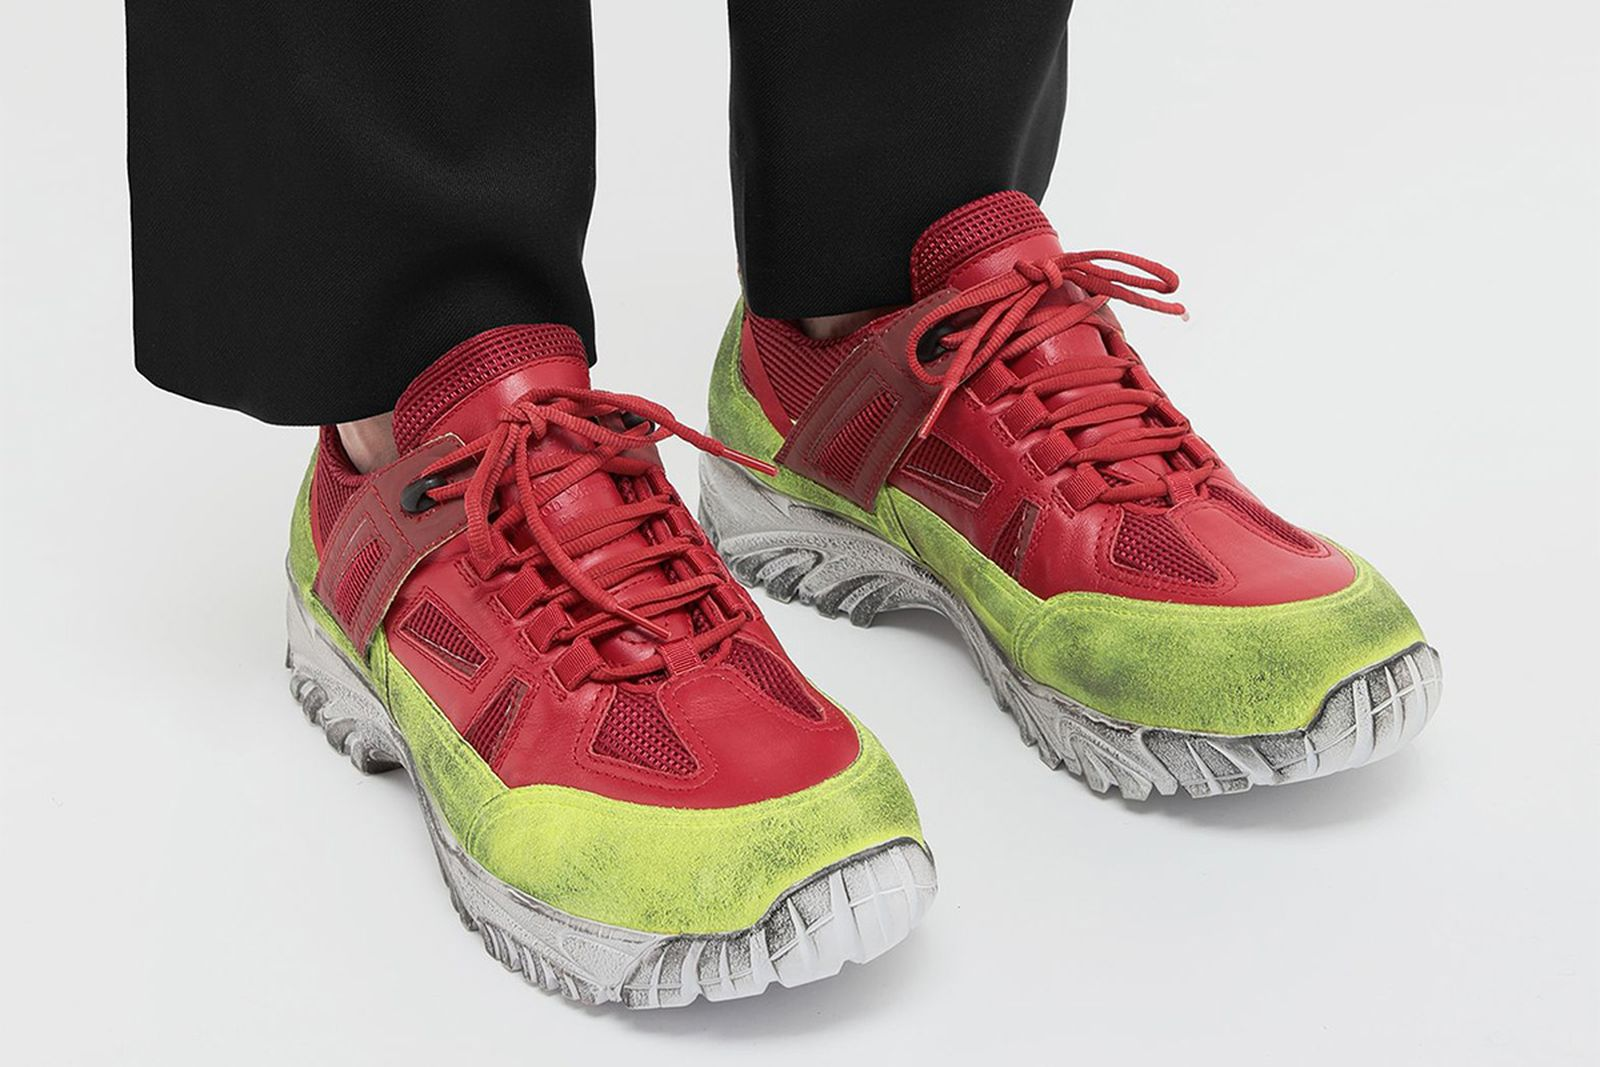 maison margiela dirty sneakers release date price